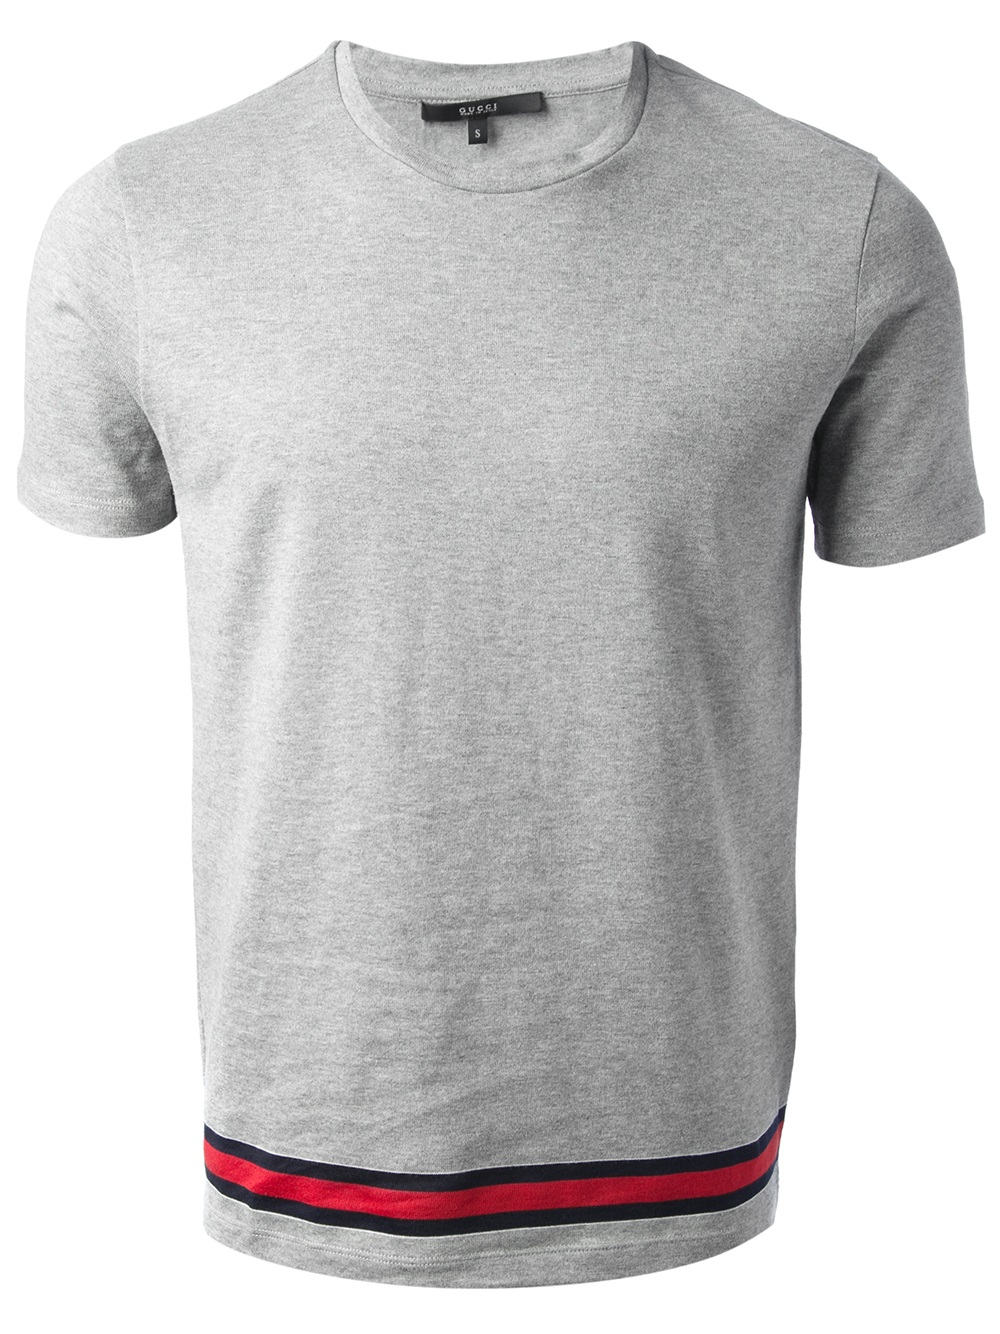 f375a784 Gucci Classic Tshirt in Gray for Men - Lyst